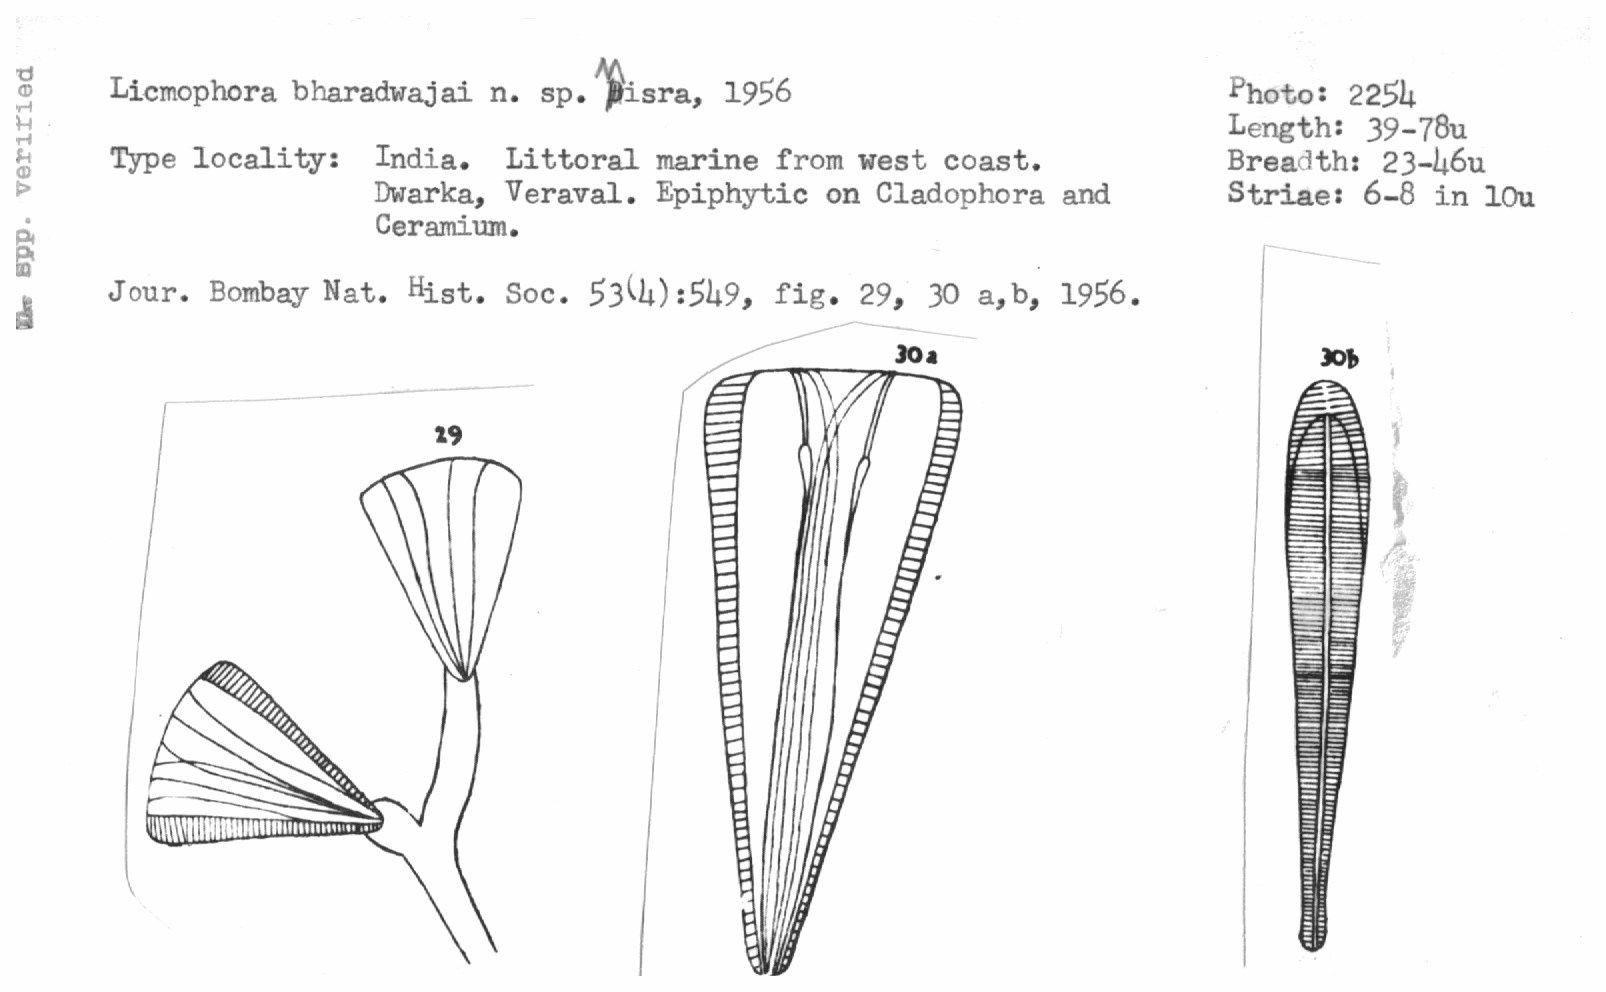 hight resolution of systematic account of some littoral marine diatoms from the west coast of india the journal of the bombay natural history society 53 4 537 568